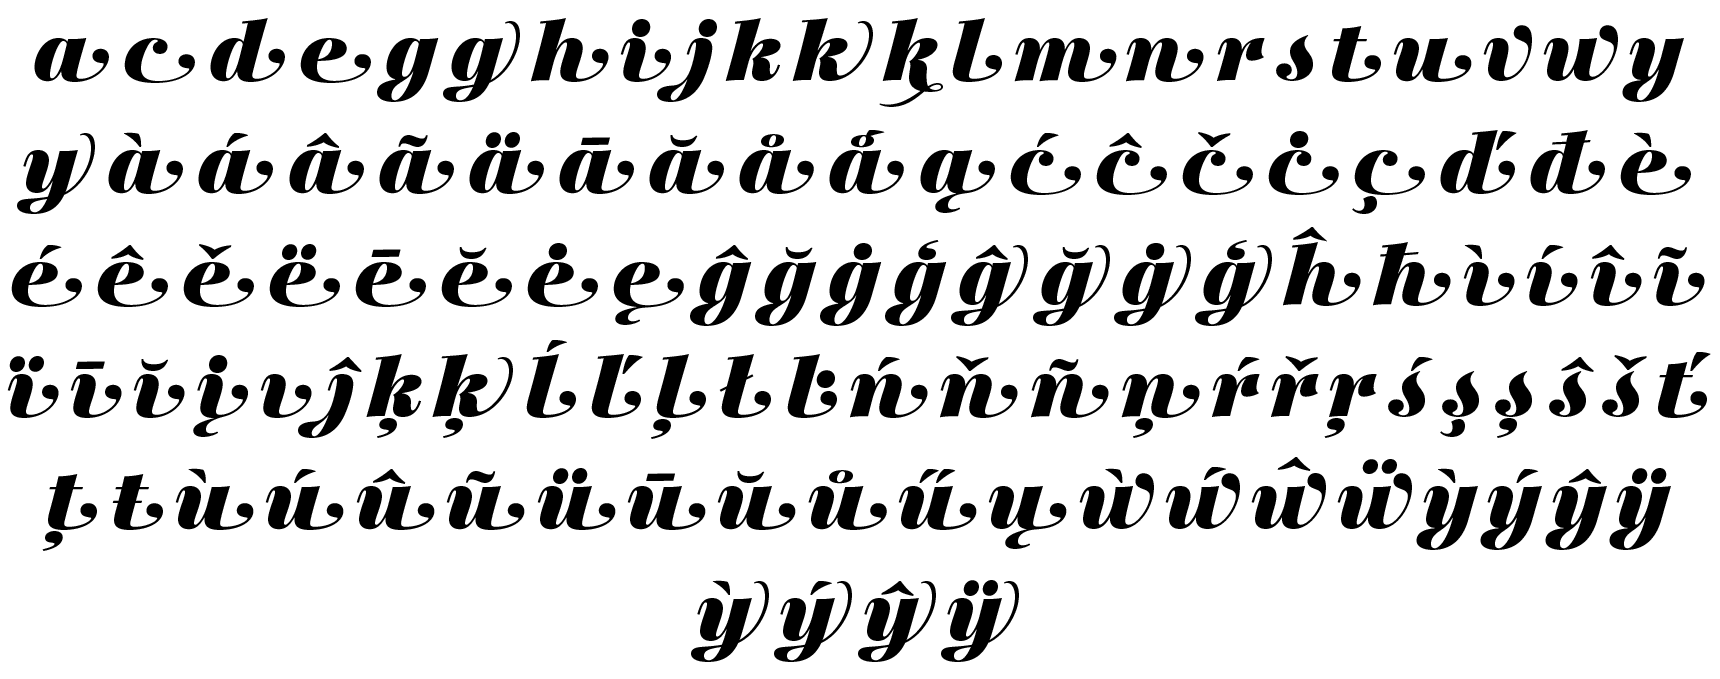 <p>Swash lowercase</p> glyphs